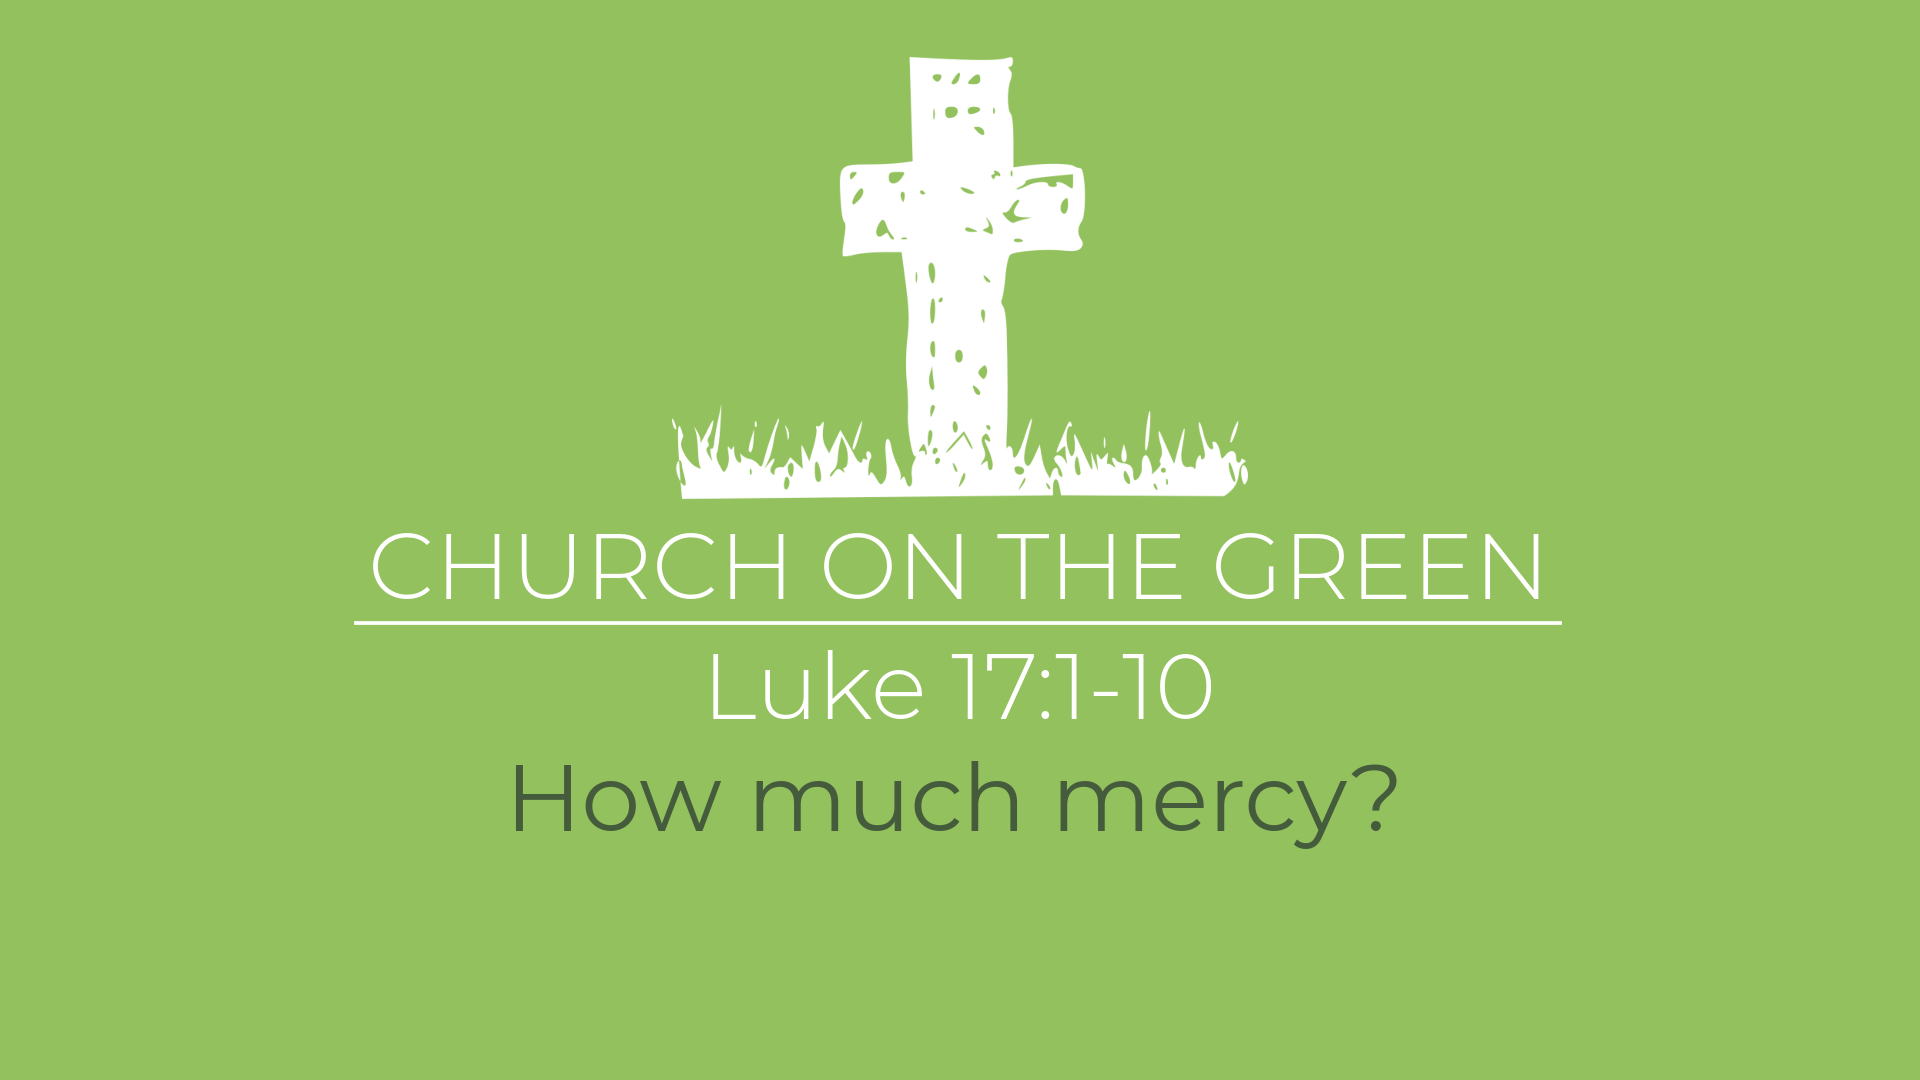 How much mercy? (Luke 17:1-10)